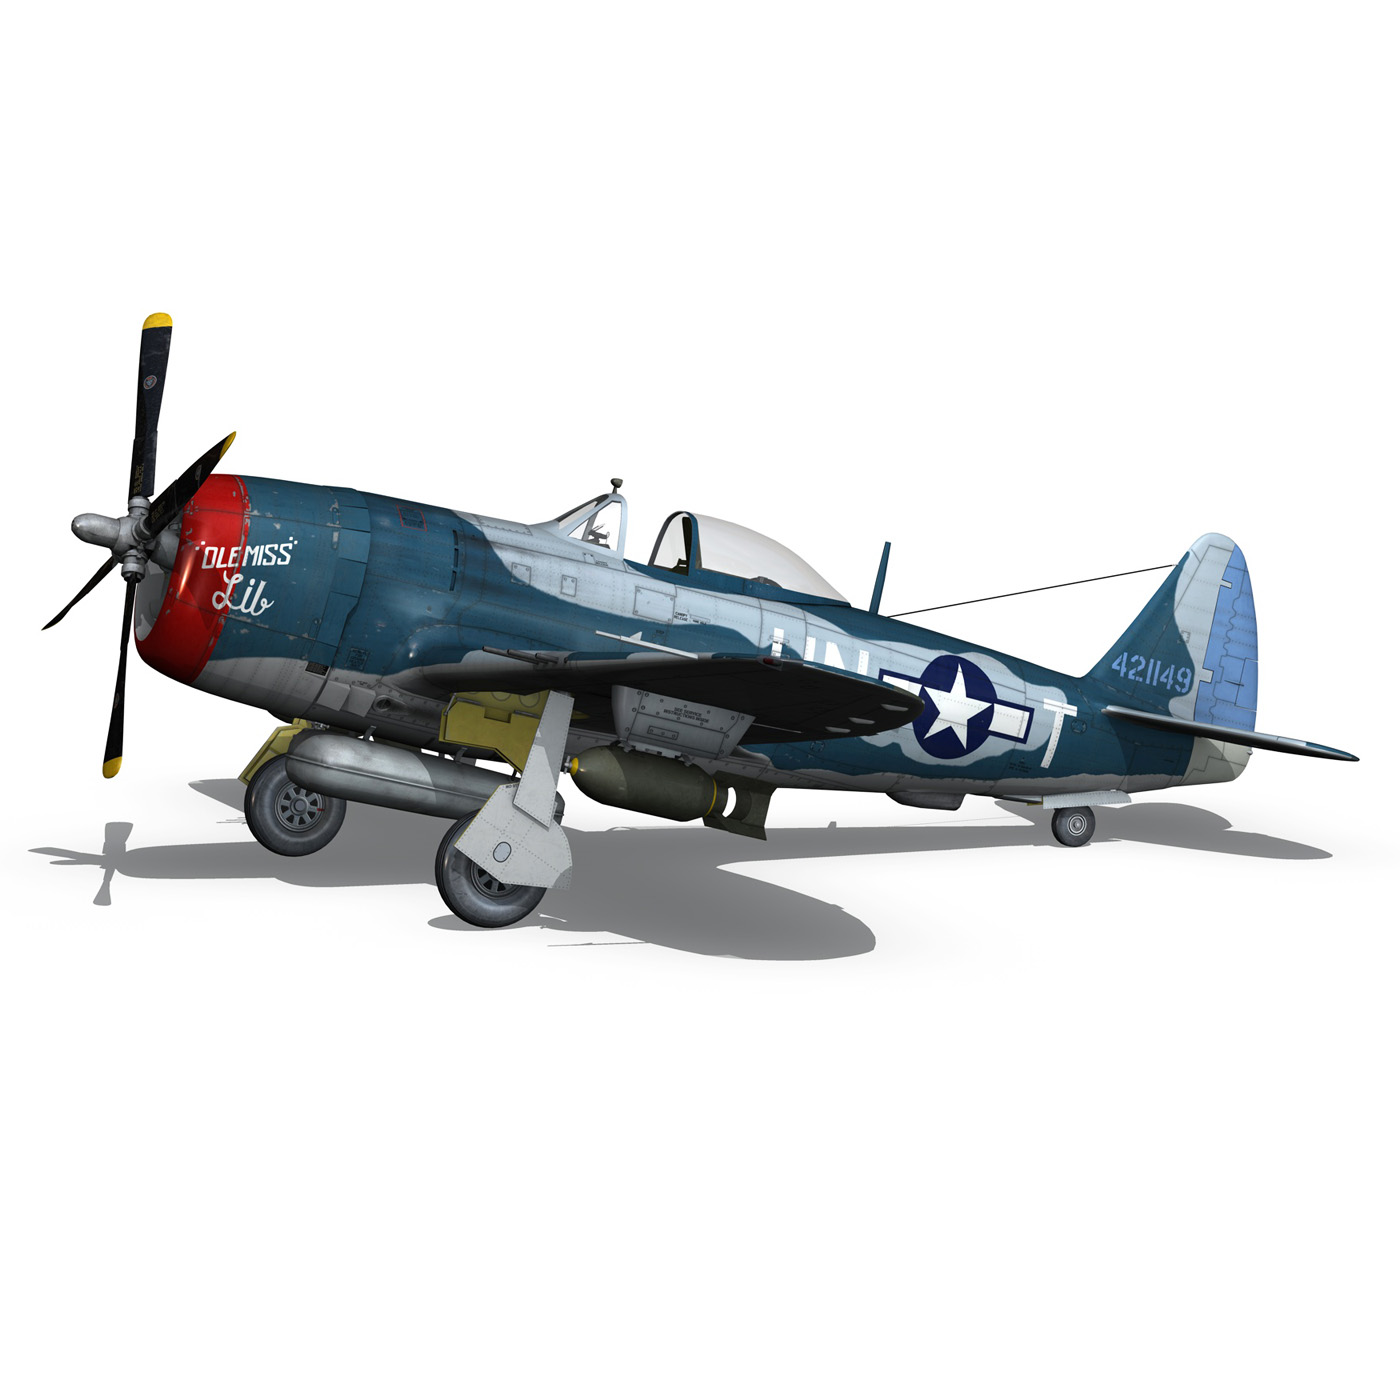 republic p-47 thunderbolt – ole miss lib 3d model fbx c4d lwo obj 274283